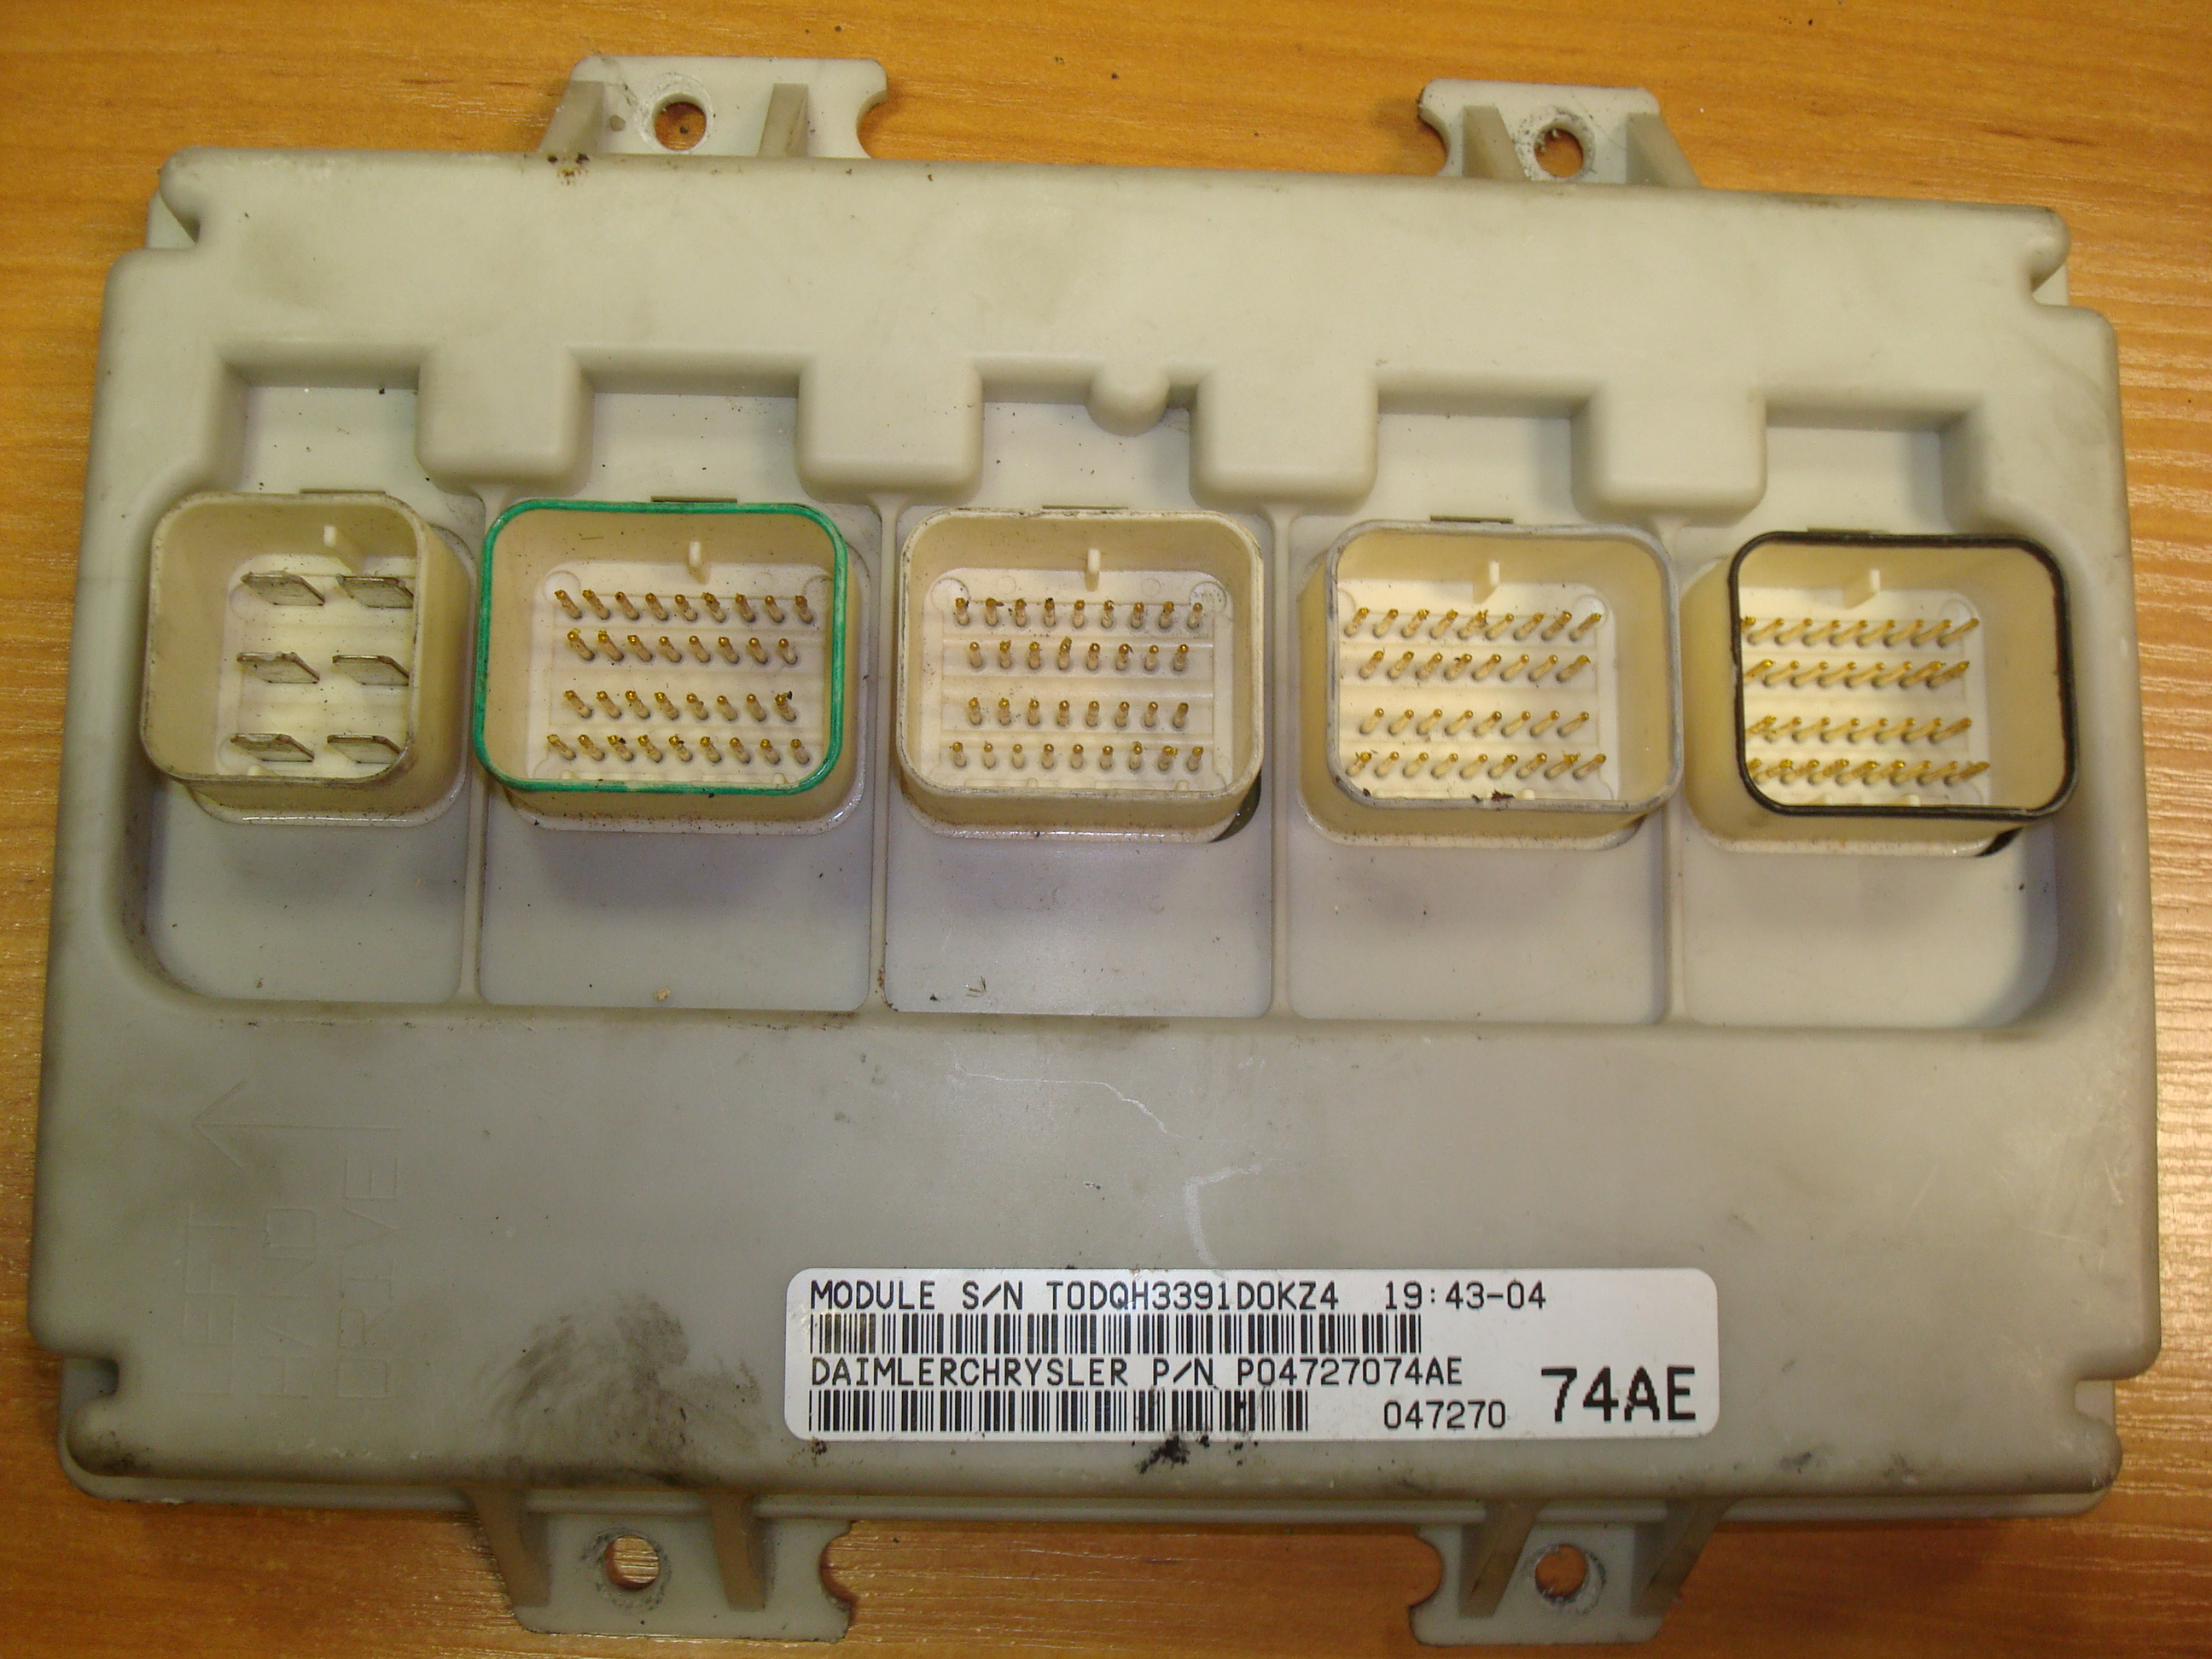 Fuse Box Po4727074ae On Chrysler Voyager Article